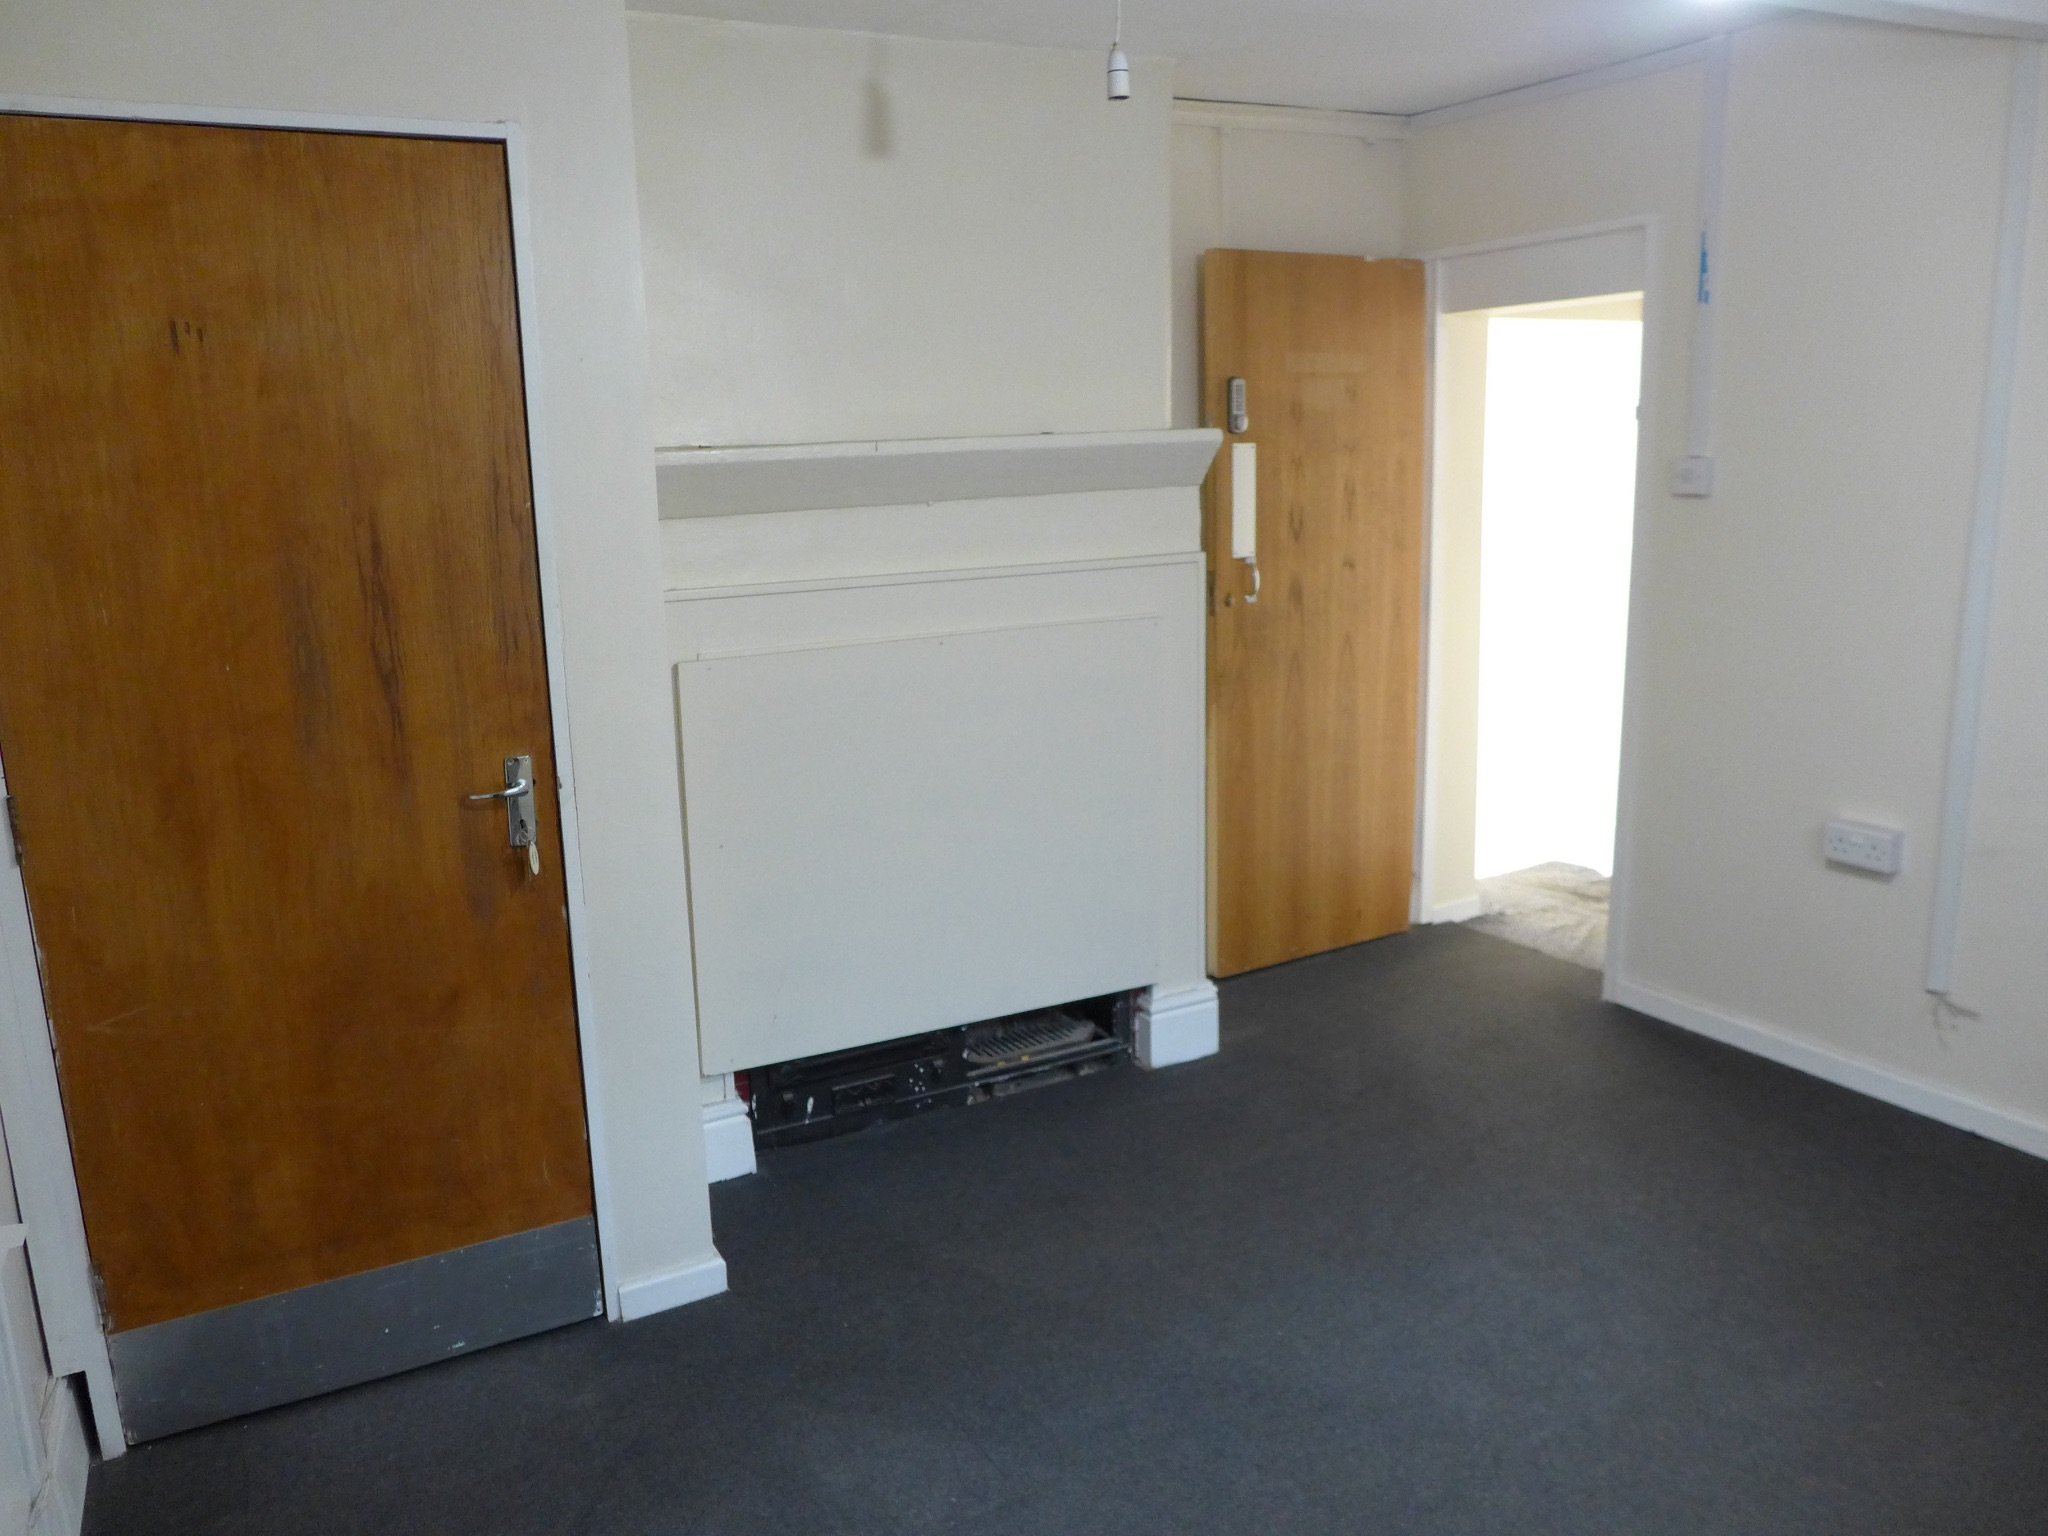 Empty Retail Premises For Sale in Calderdale - Photograph 6.